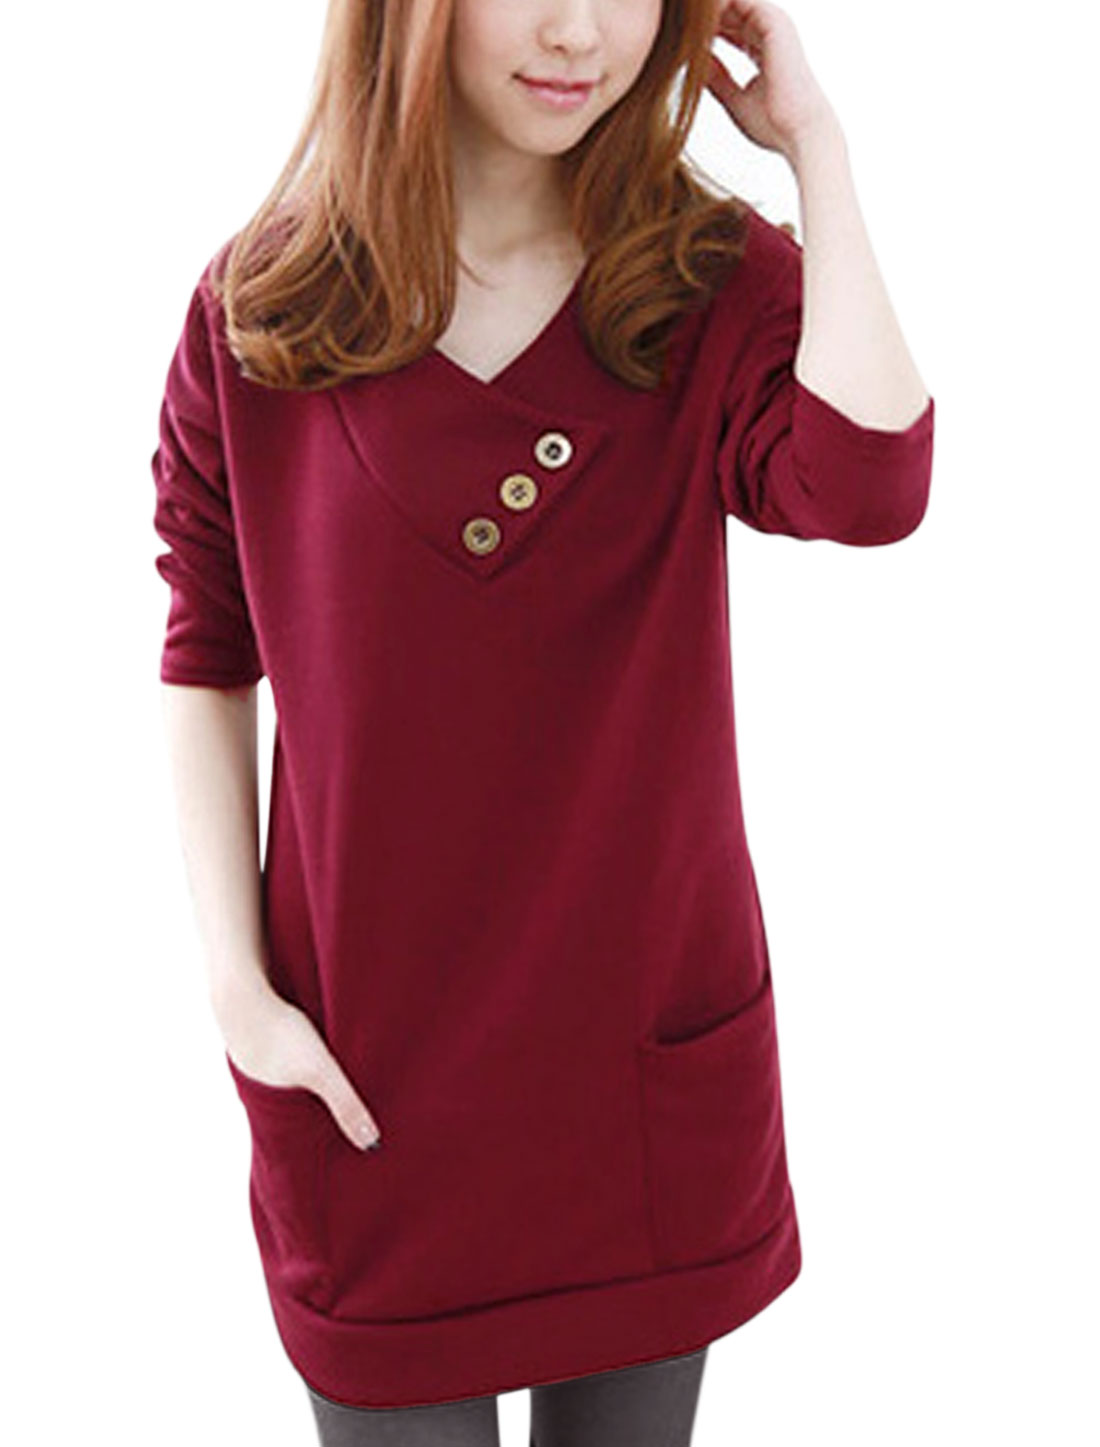 Women Hooded V Neckline Soft Lining Leisure Tunic Top Burgundy XS